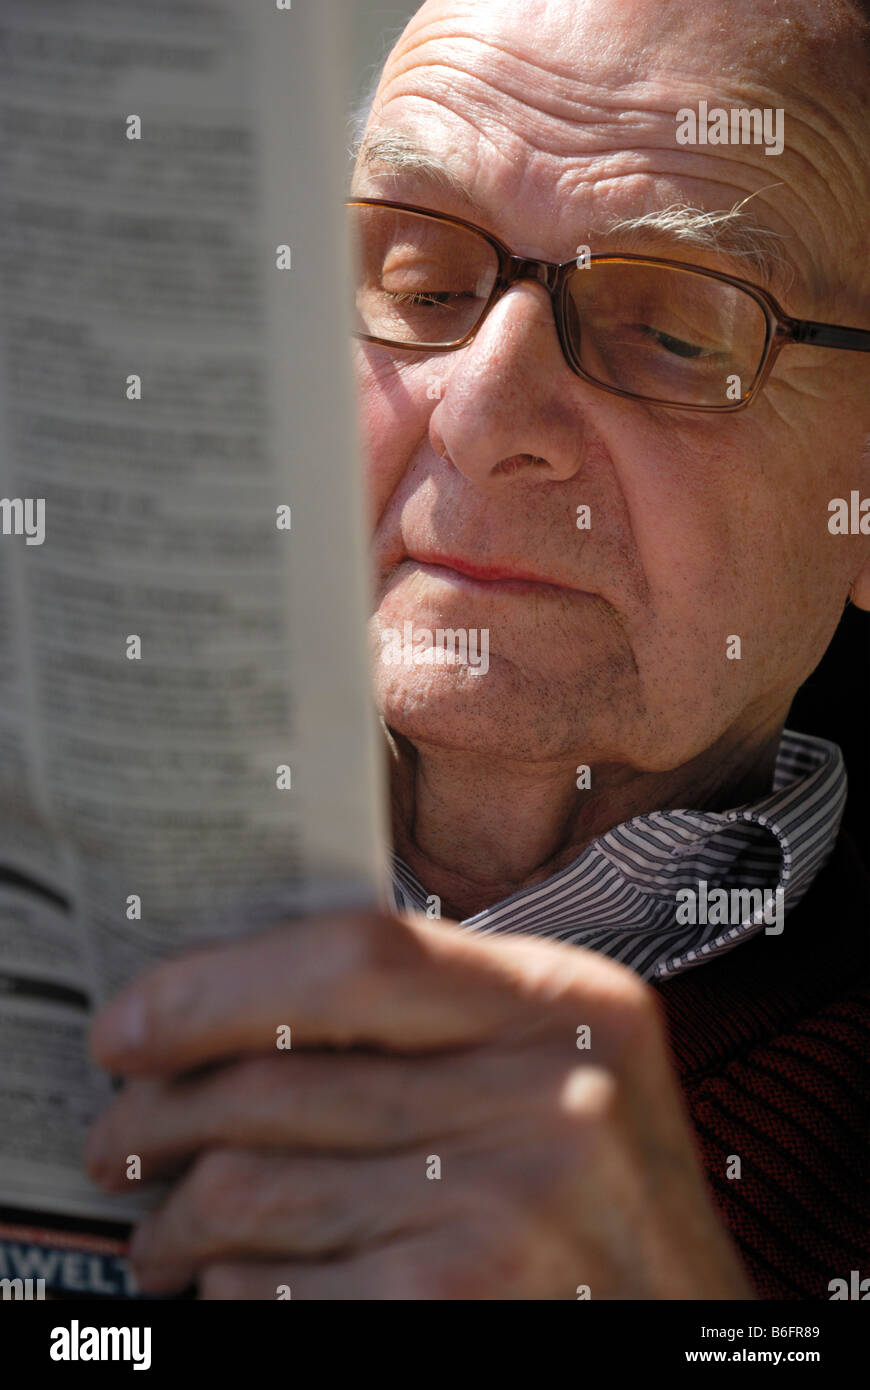 4f600535acbd Old man wearing glasses and reading a newspaper with a serious expression